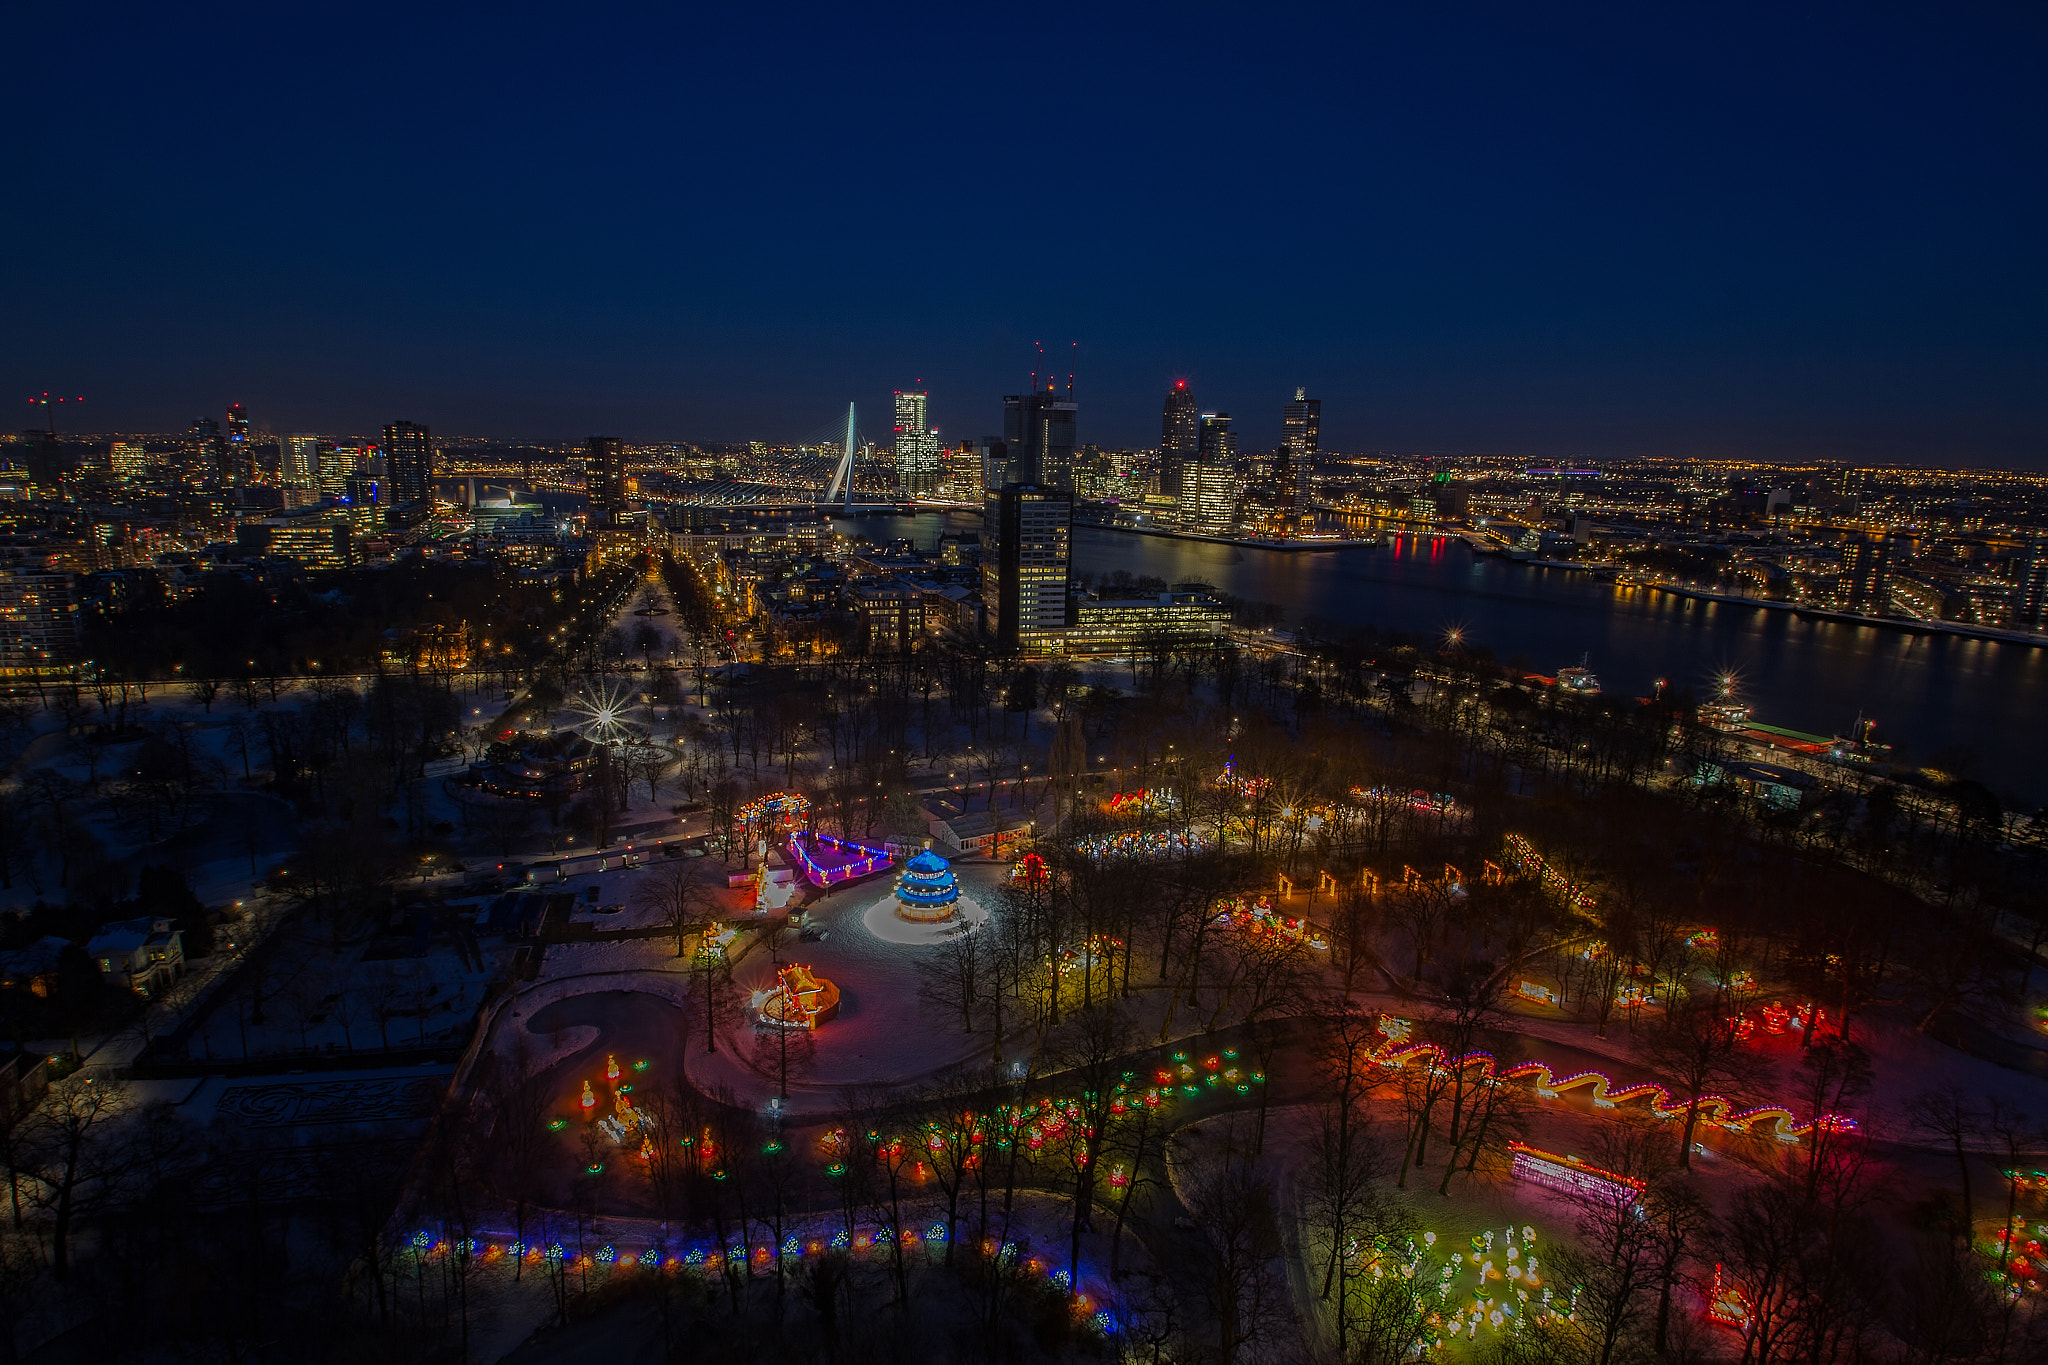 Photograph China Light from Euromast by René Ladenius on 500px